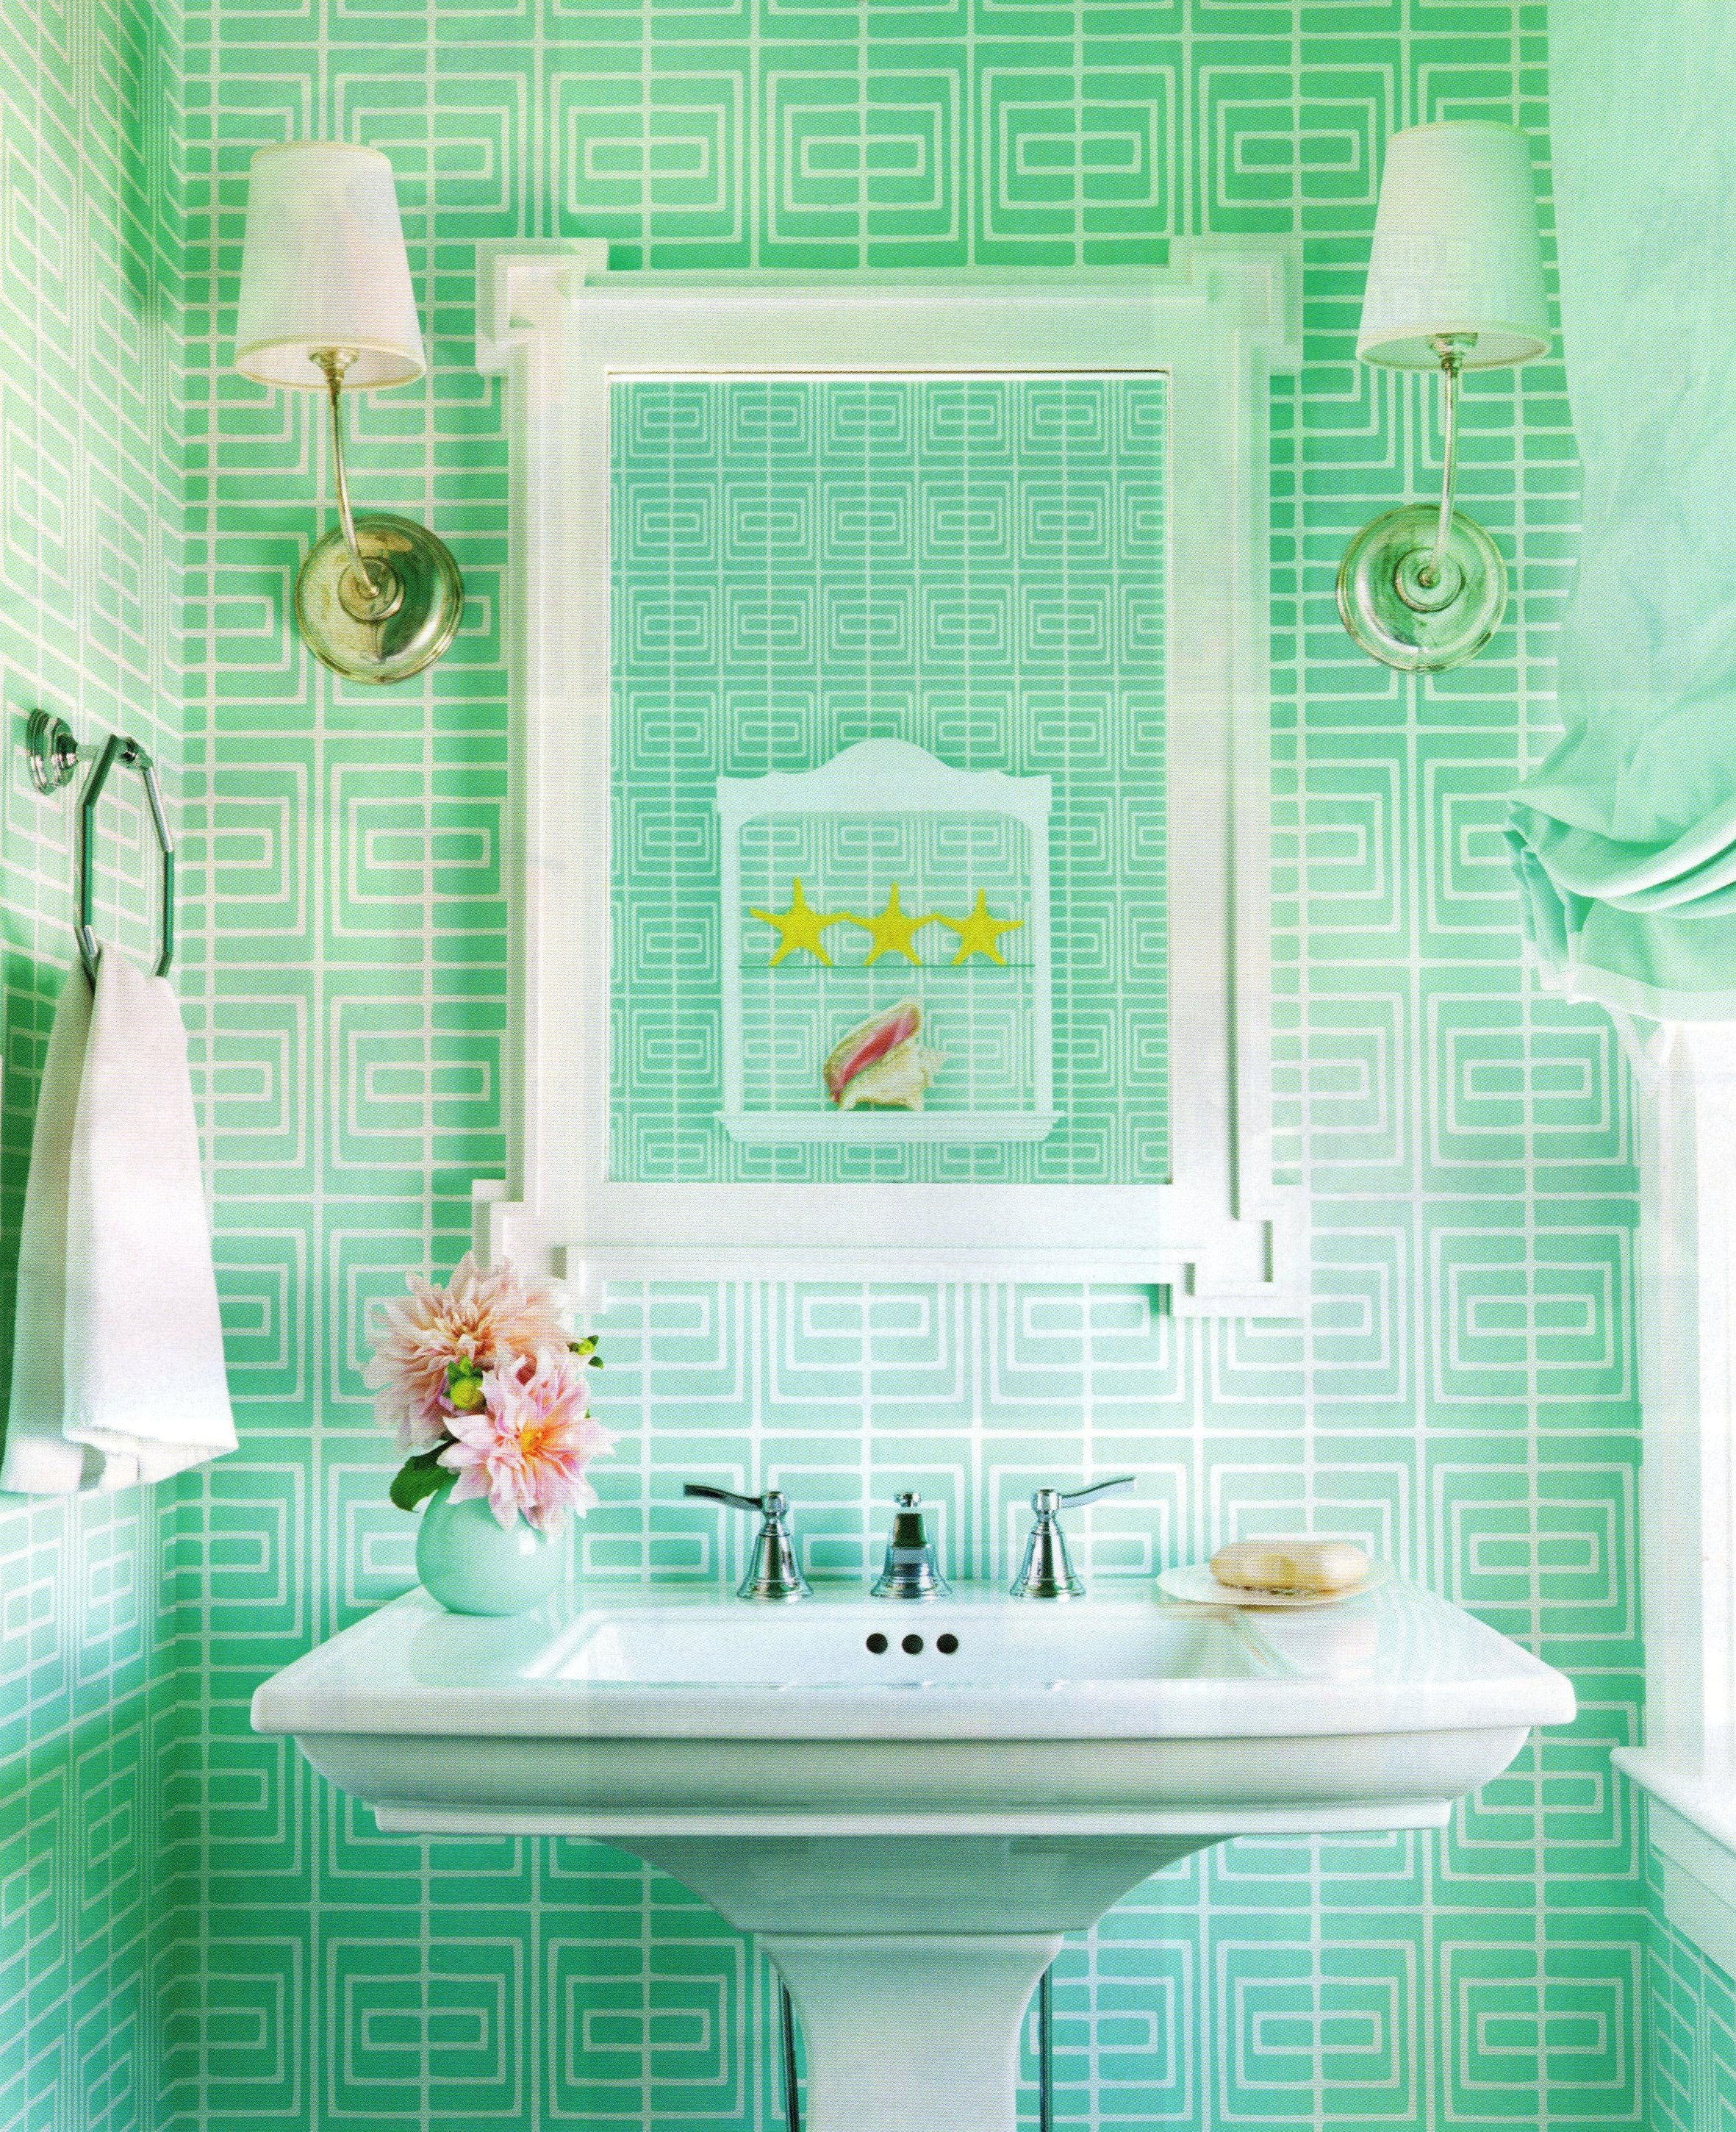 Bathroom Art Minted: 35 Great Pictures And Ideas Of Vintage Ceramic Bathroom